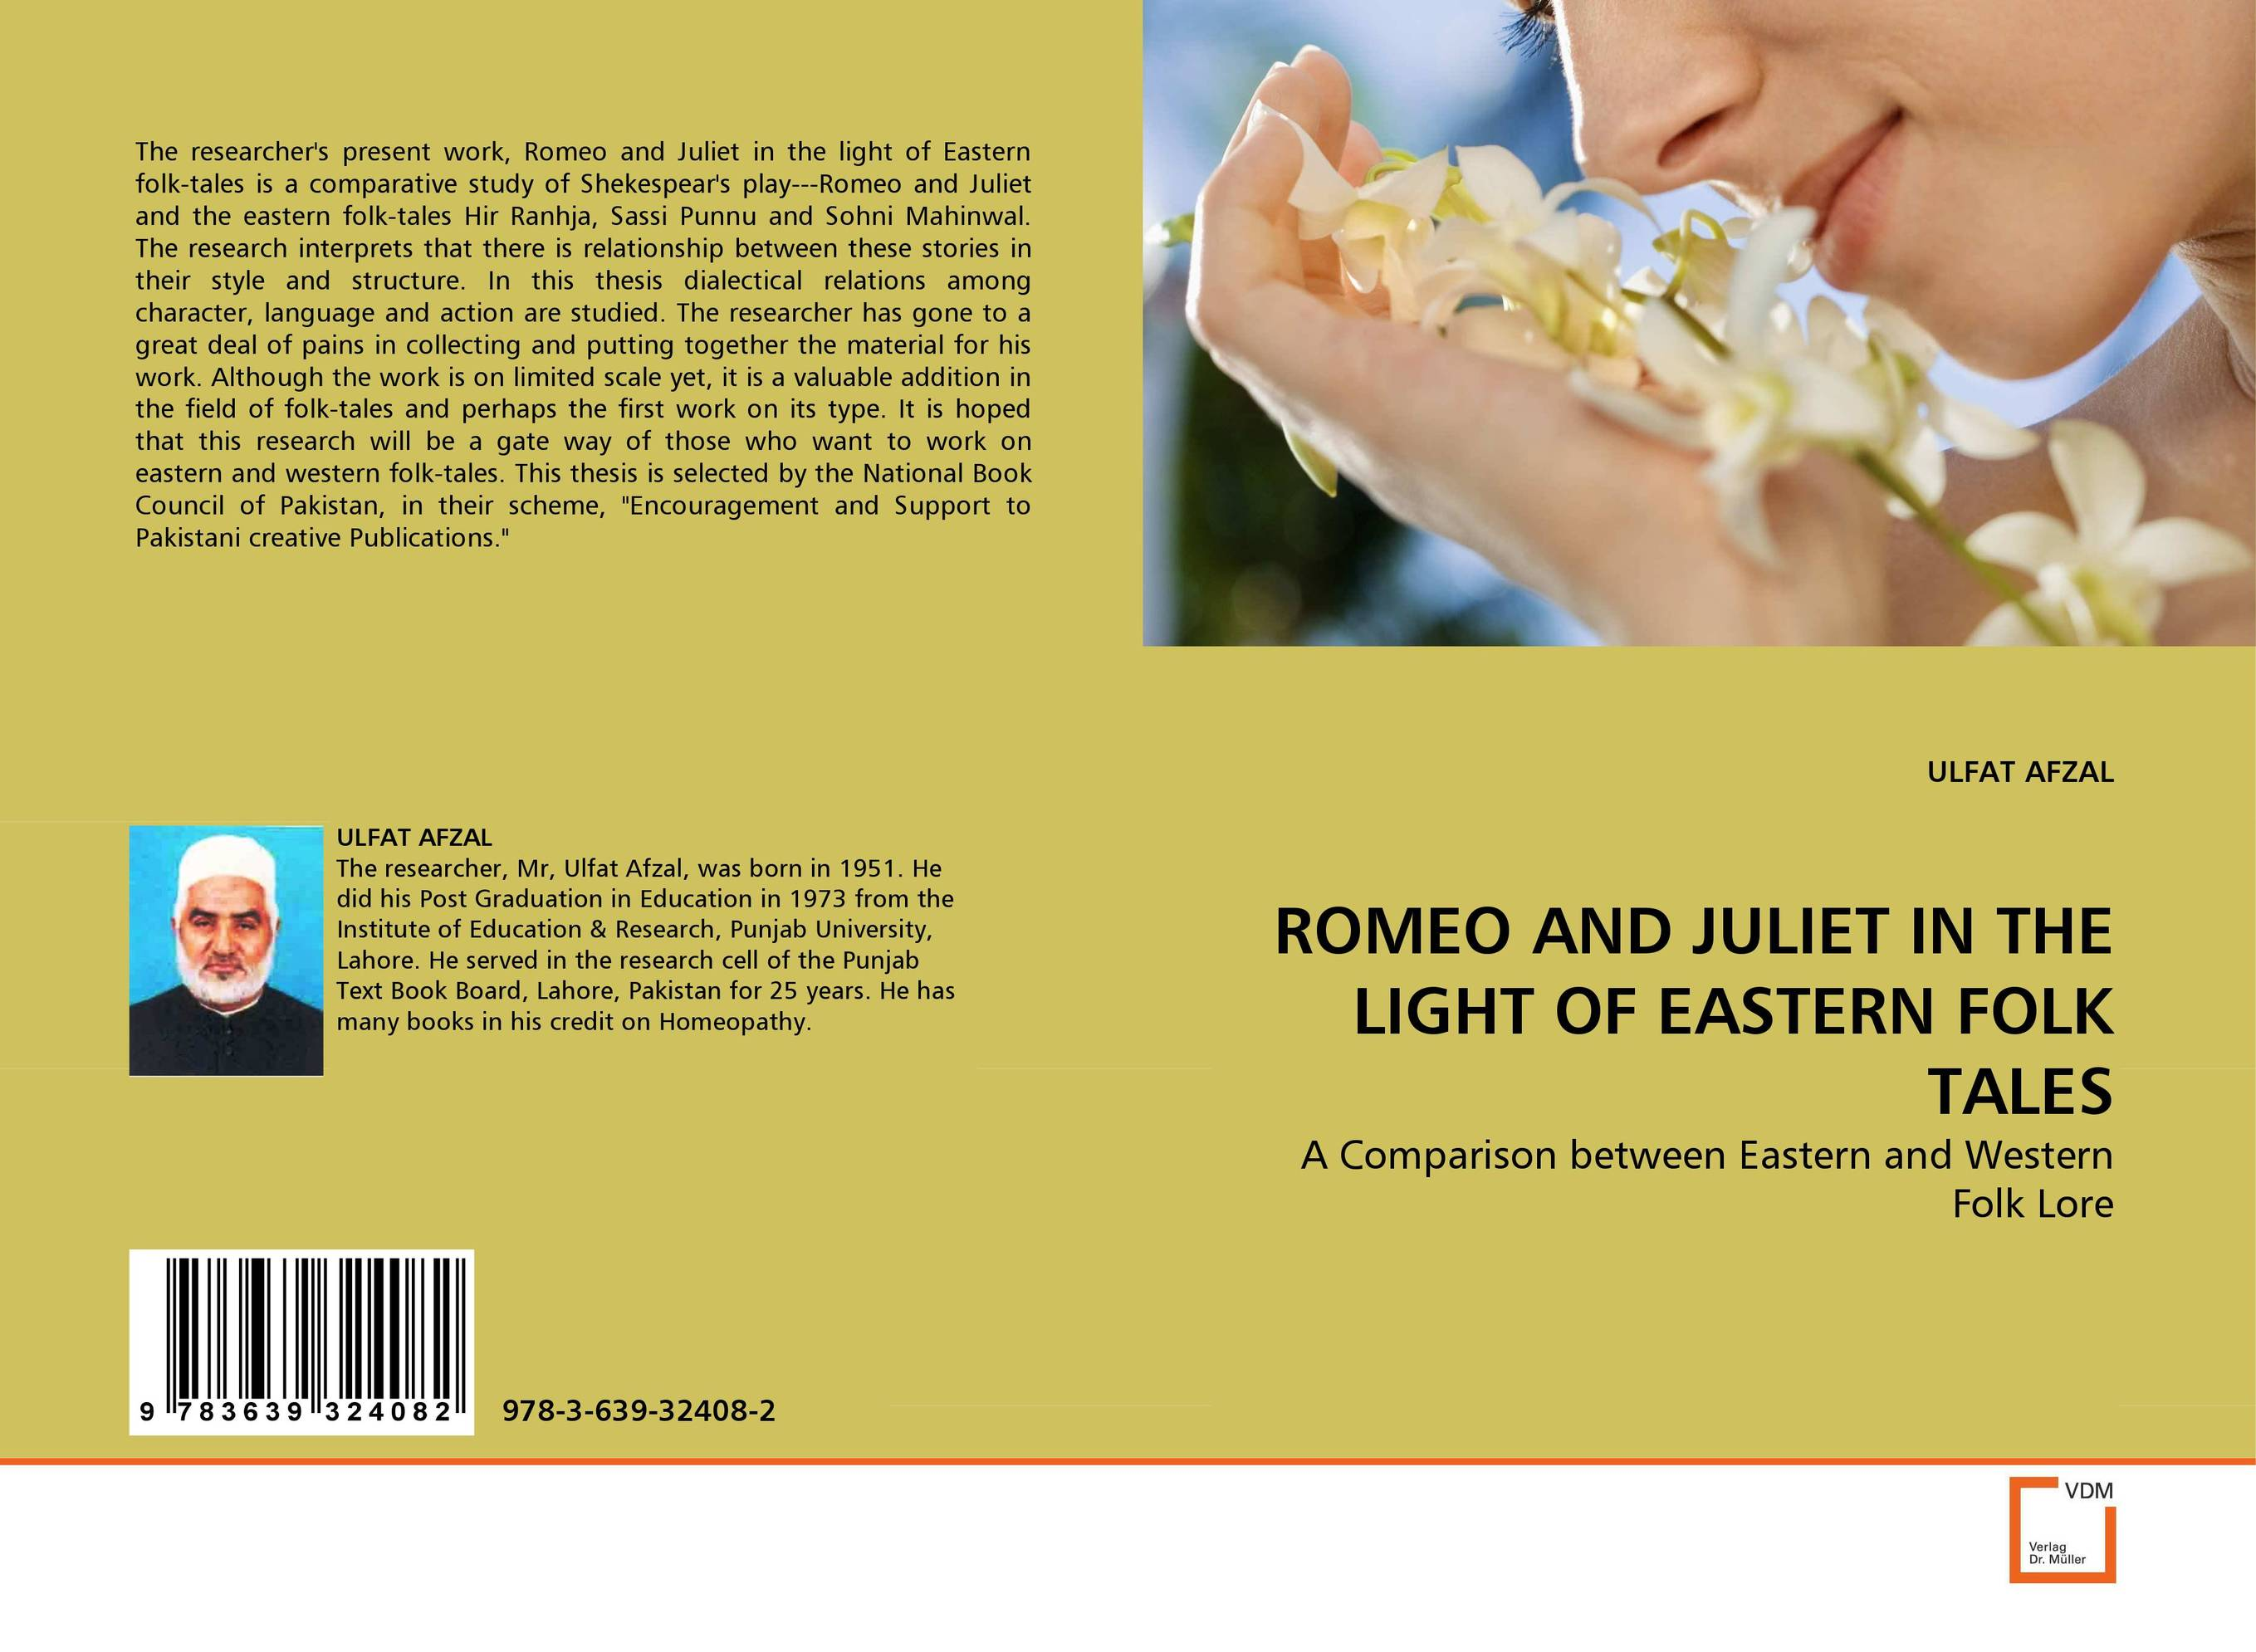 ROMEO AND JULIET IN THE LIGHT OF EASTERN FOLK TALES shakespeare william rdr cd [lv 2] romeo and juliet